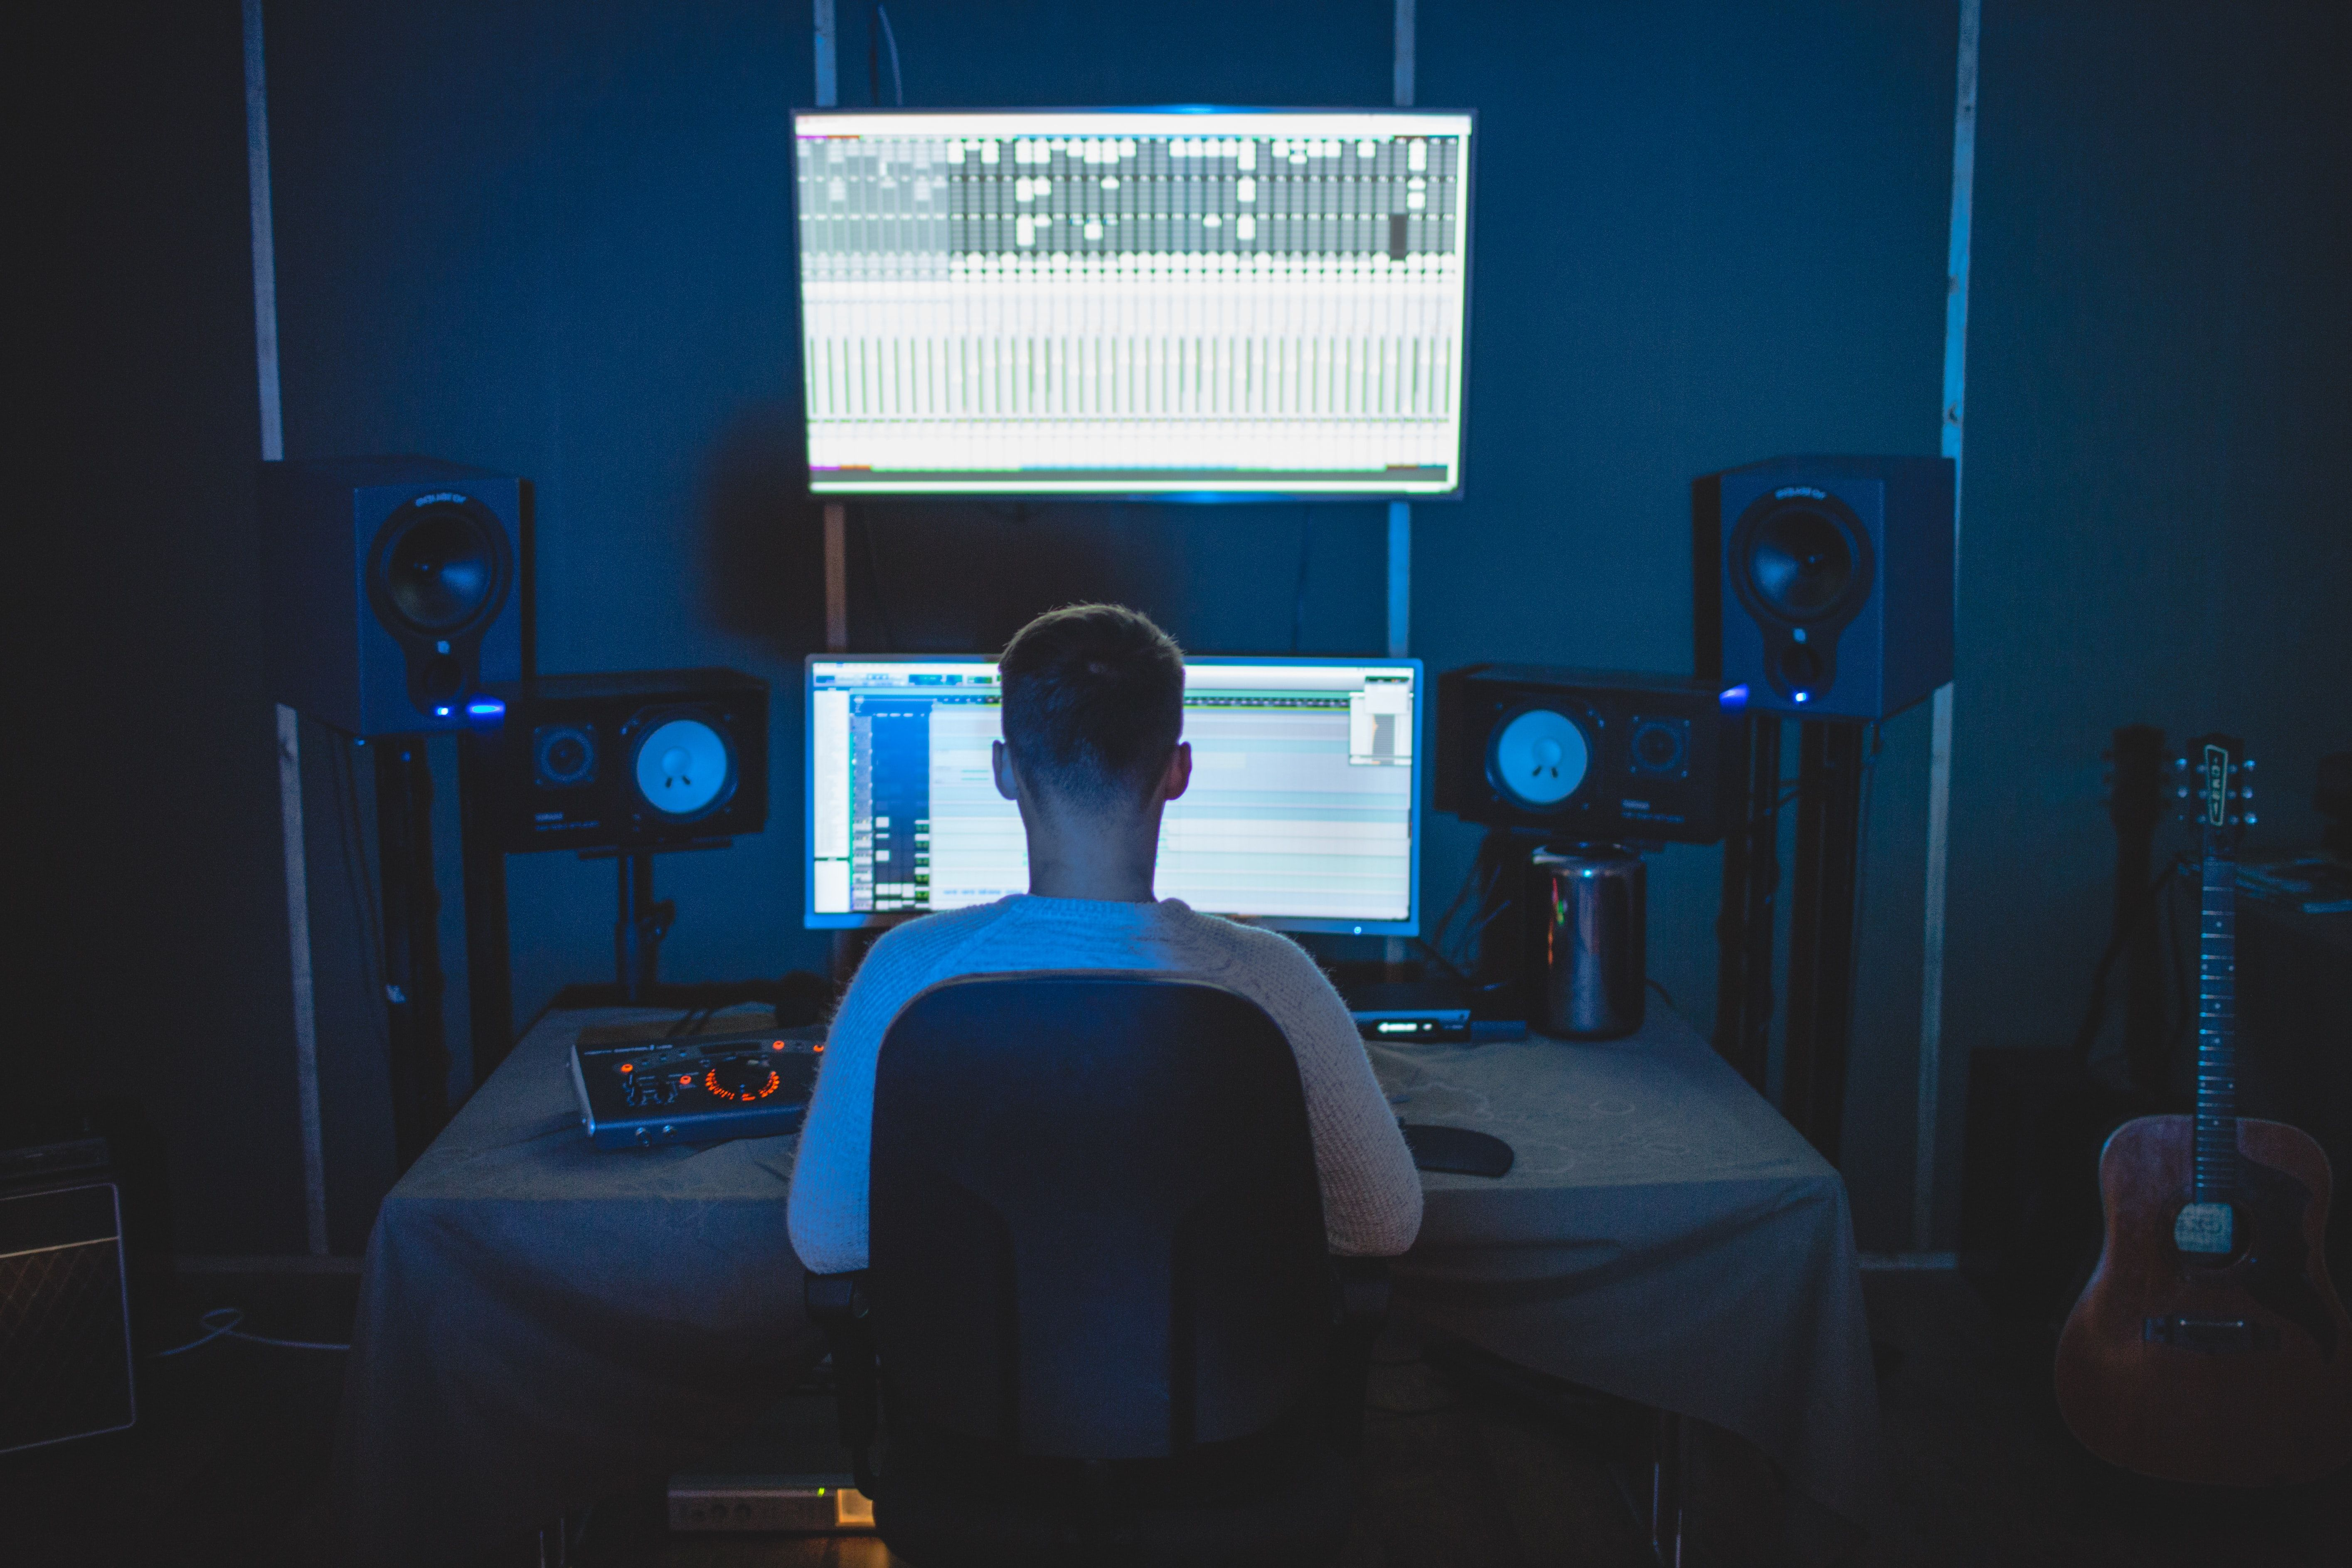 82 Of Artists Make Less Than 300 Per Year Through Streaming Logic Pro X Best Apps Studio Monitors